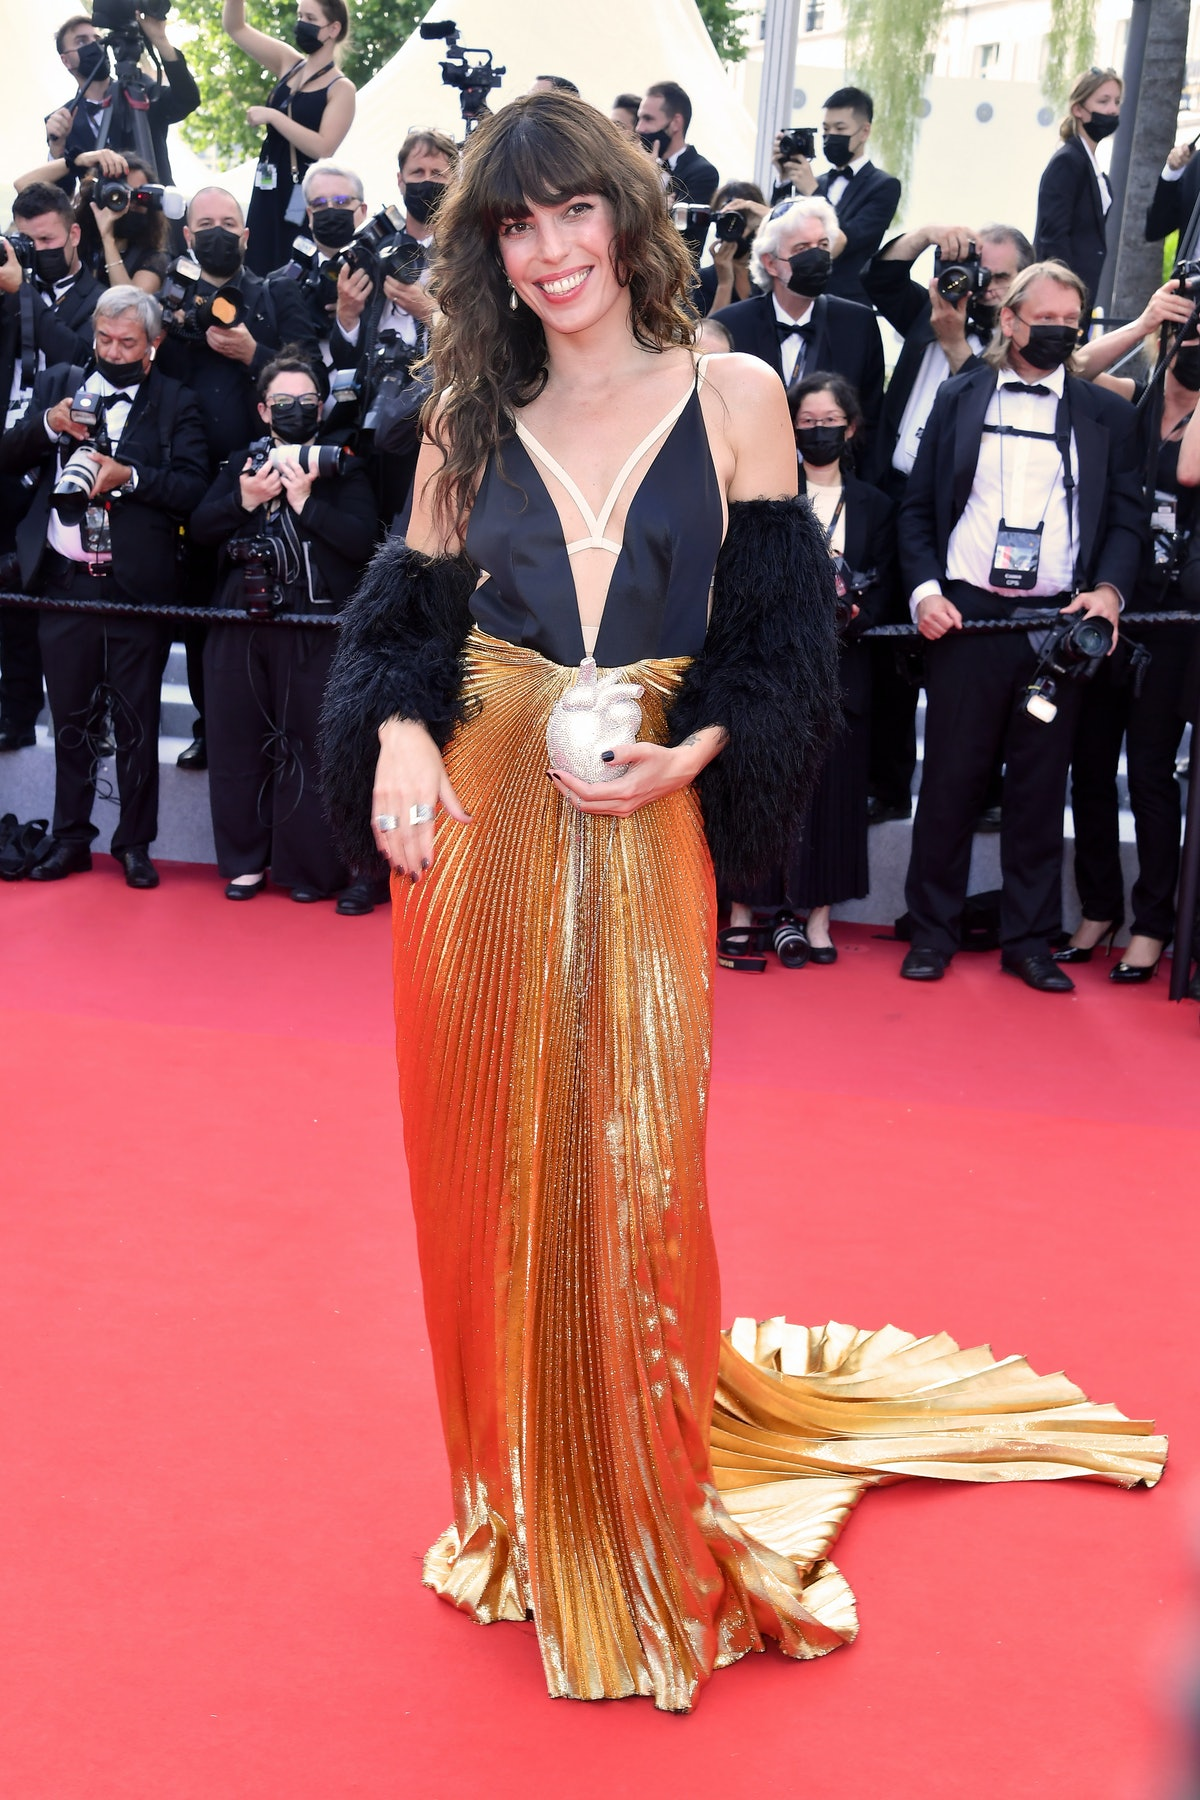 """CANNES, FRANCE - JULY 06: Lou Doillon attends the """"Annette"""" screening and opening ceremony during the 74th annual Cannes Film Festival on July 06, 2021 in Cannes, France. (Photo by Stephane Cardinale - Corbis/Corbis via Getty Images)"""